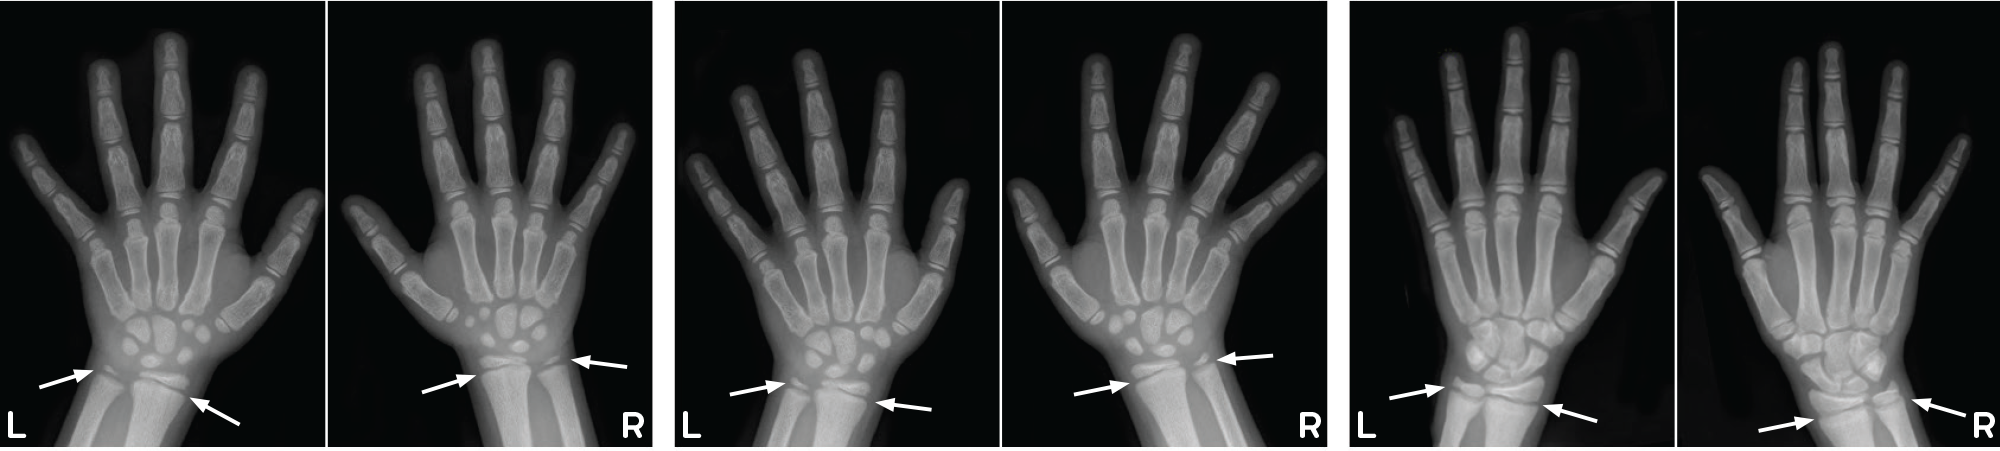 Example radiographs of wrists from patient on conventional therapy